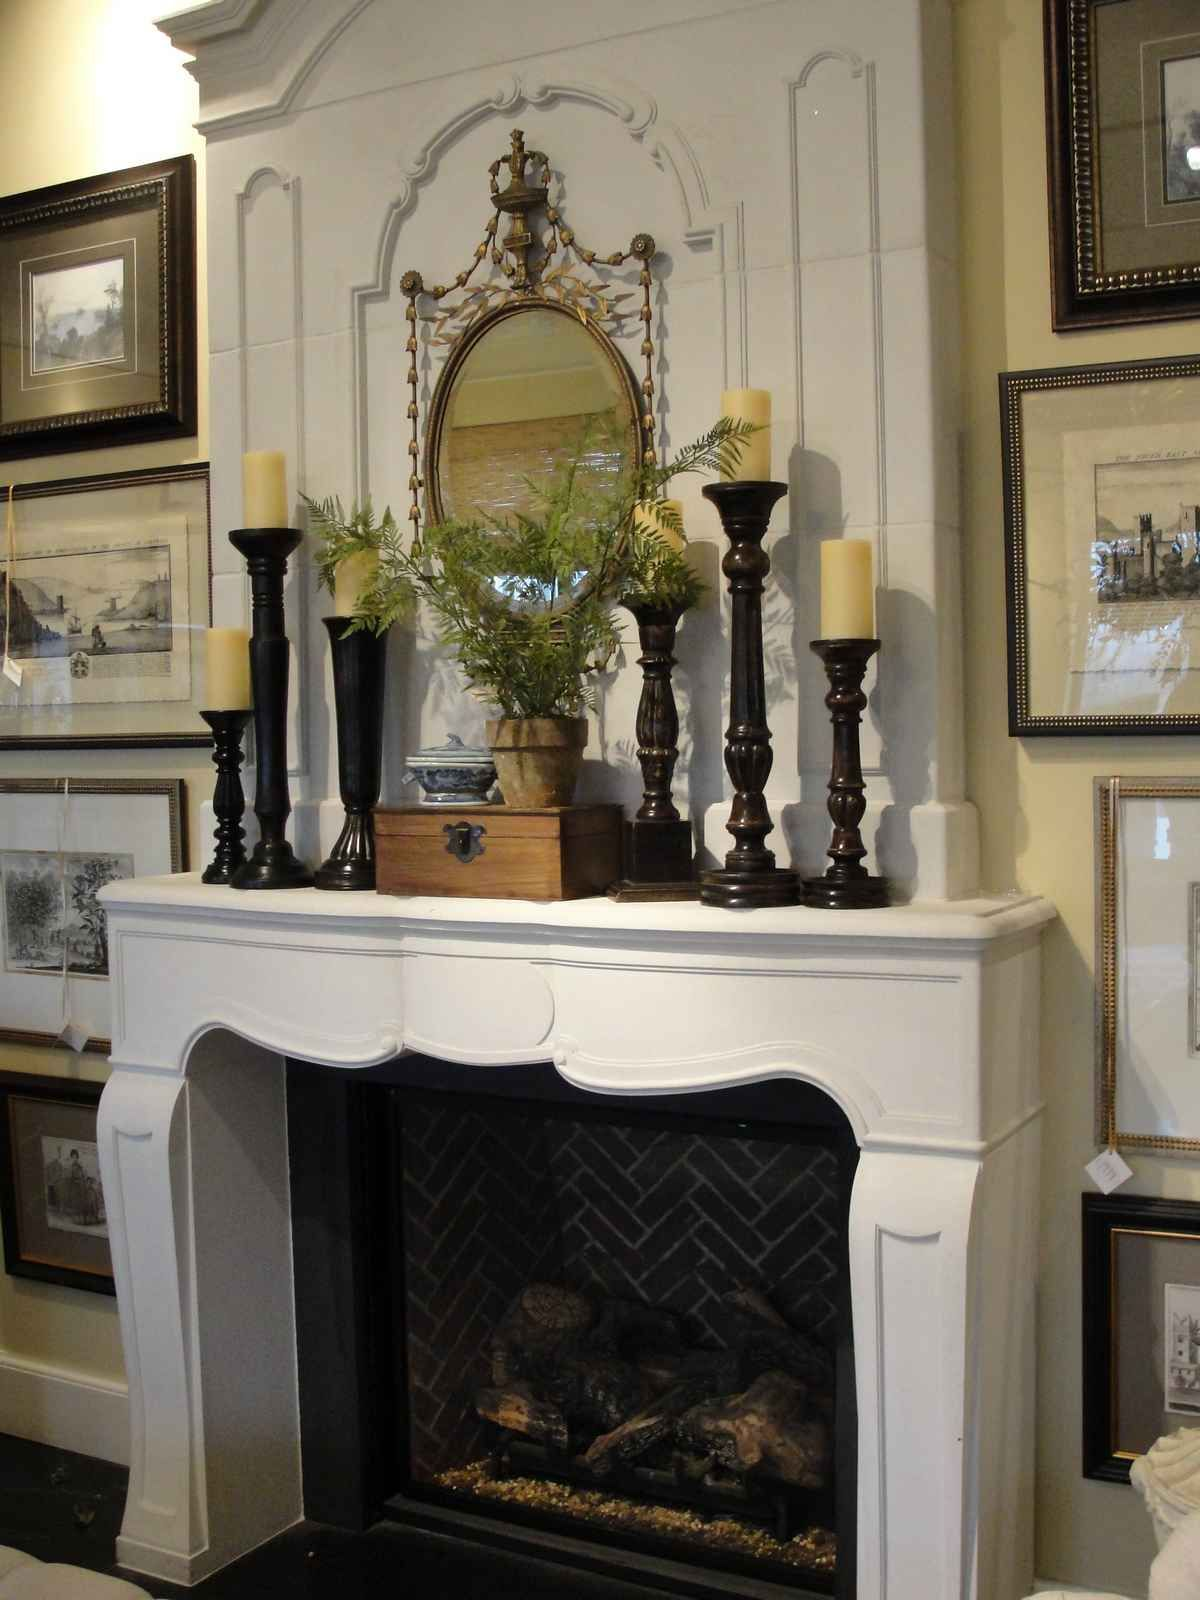 Fireplace Shabby Chic Fireplace Mantel Decor Ideas Shabby Chic Fireplace Mantel Decor White Fireplace Mantels Home Fireplace